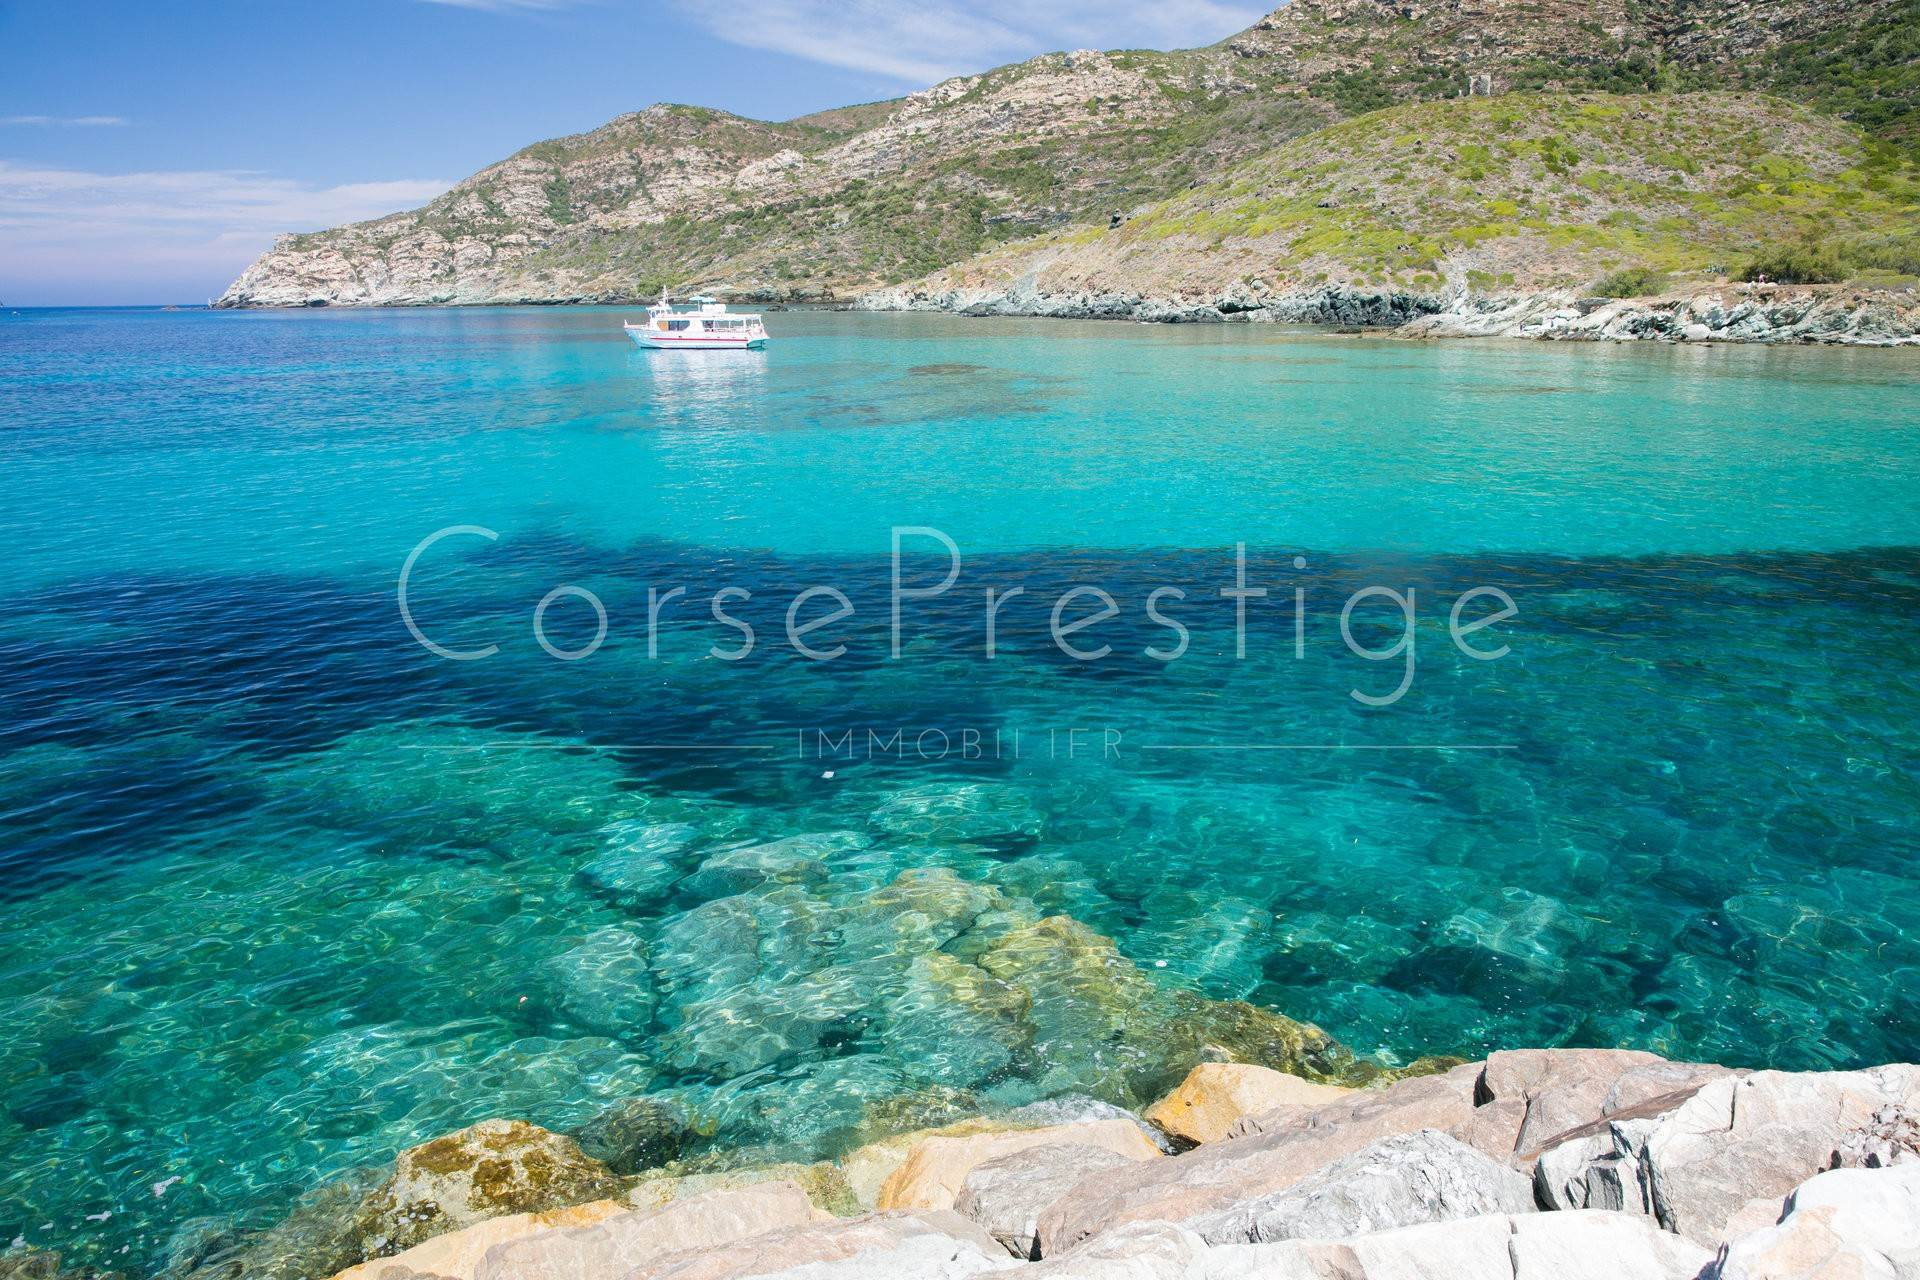 Villa/Townhouse for Sale at Waterfront villa for sale North Corsica - Cap Corse CAP CORSICA Cap Corse, Corsica,20248 France